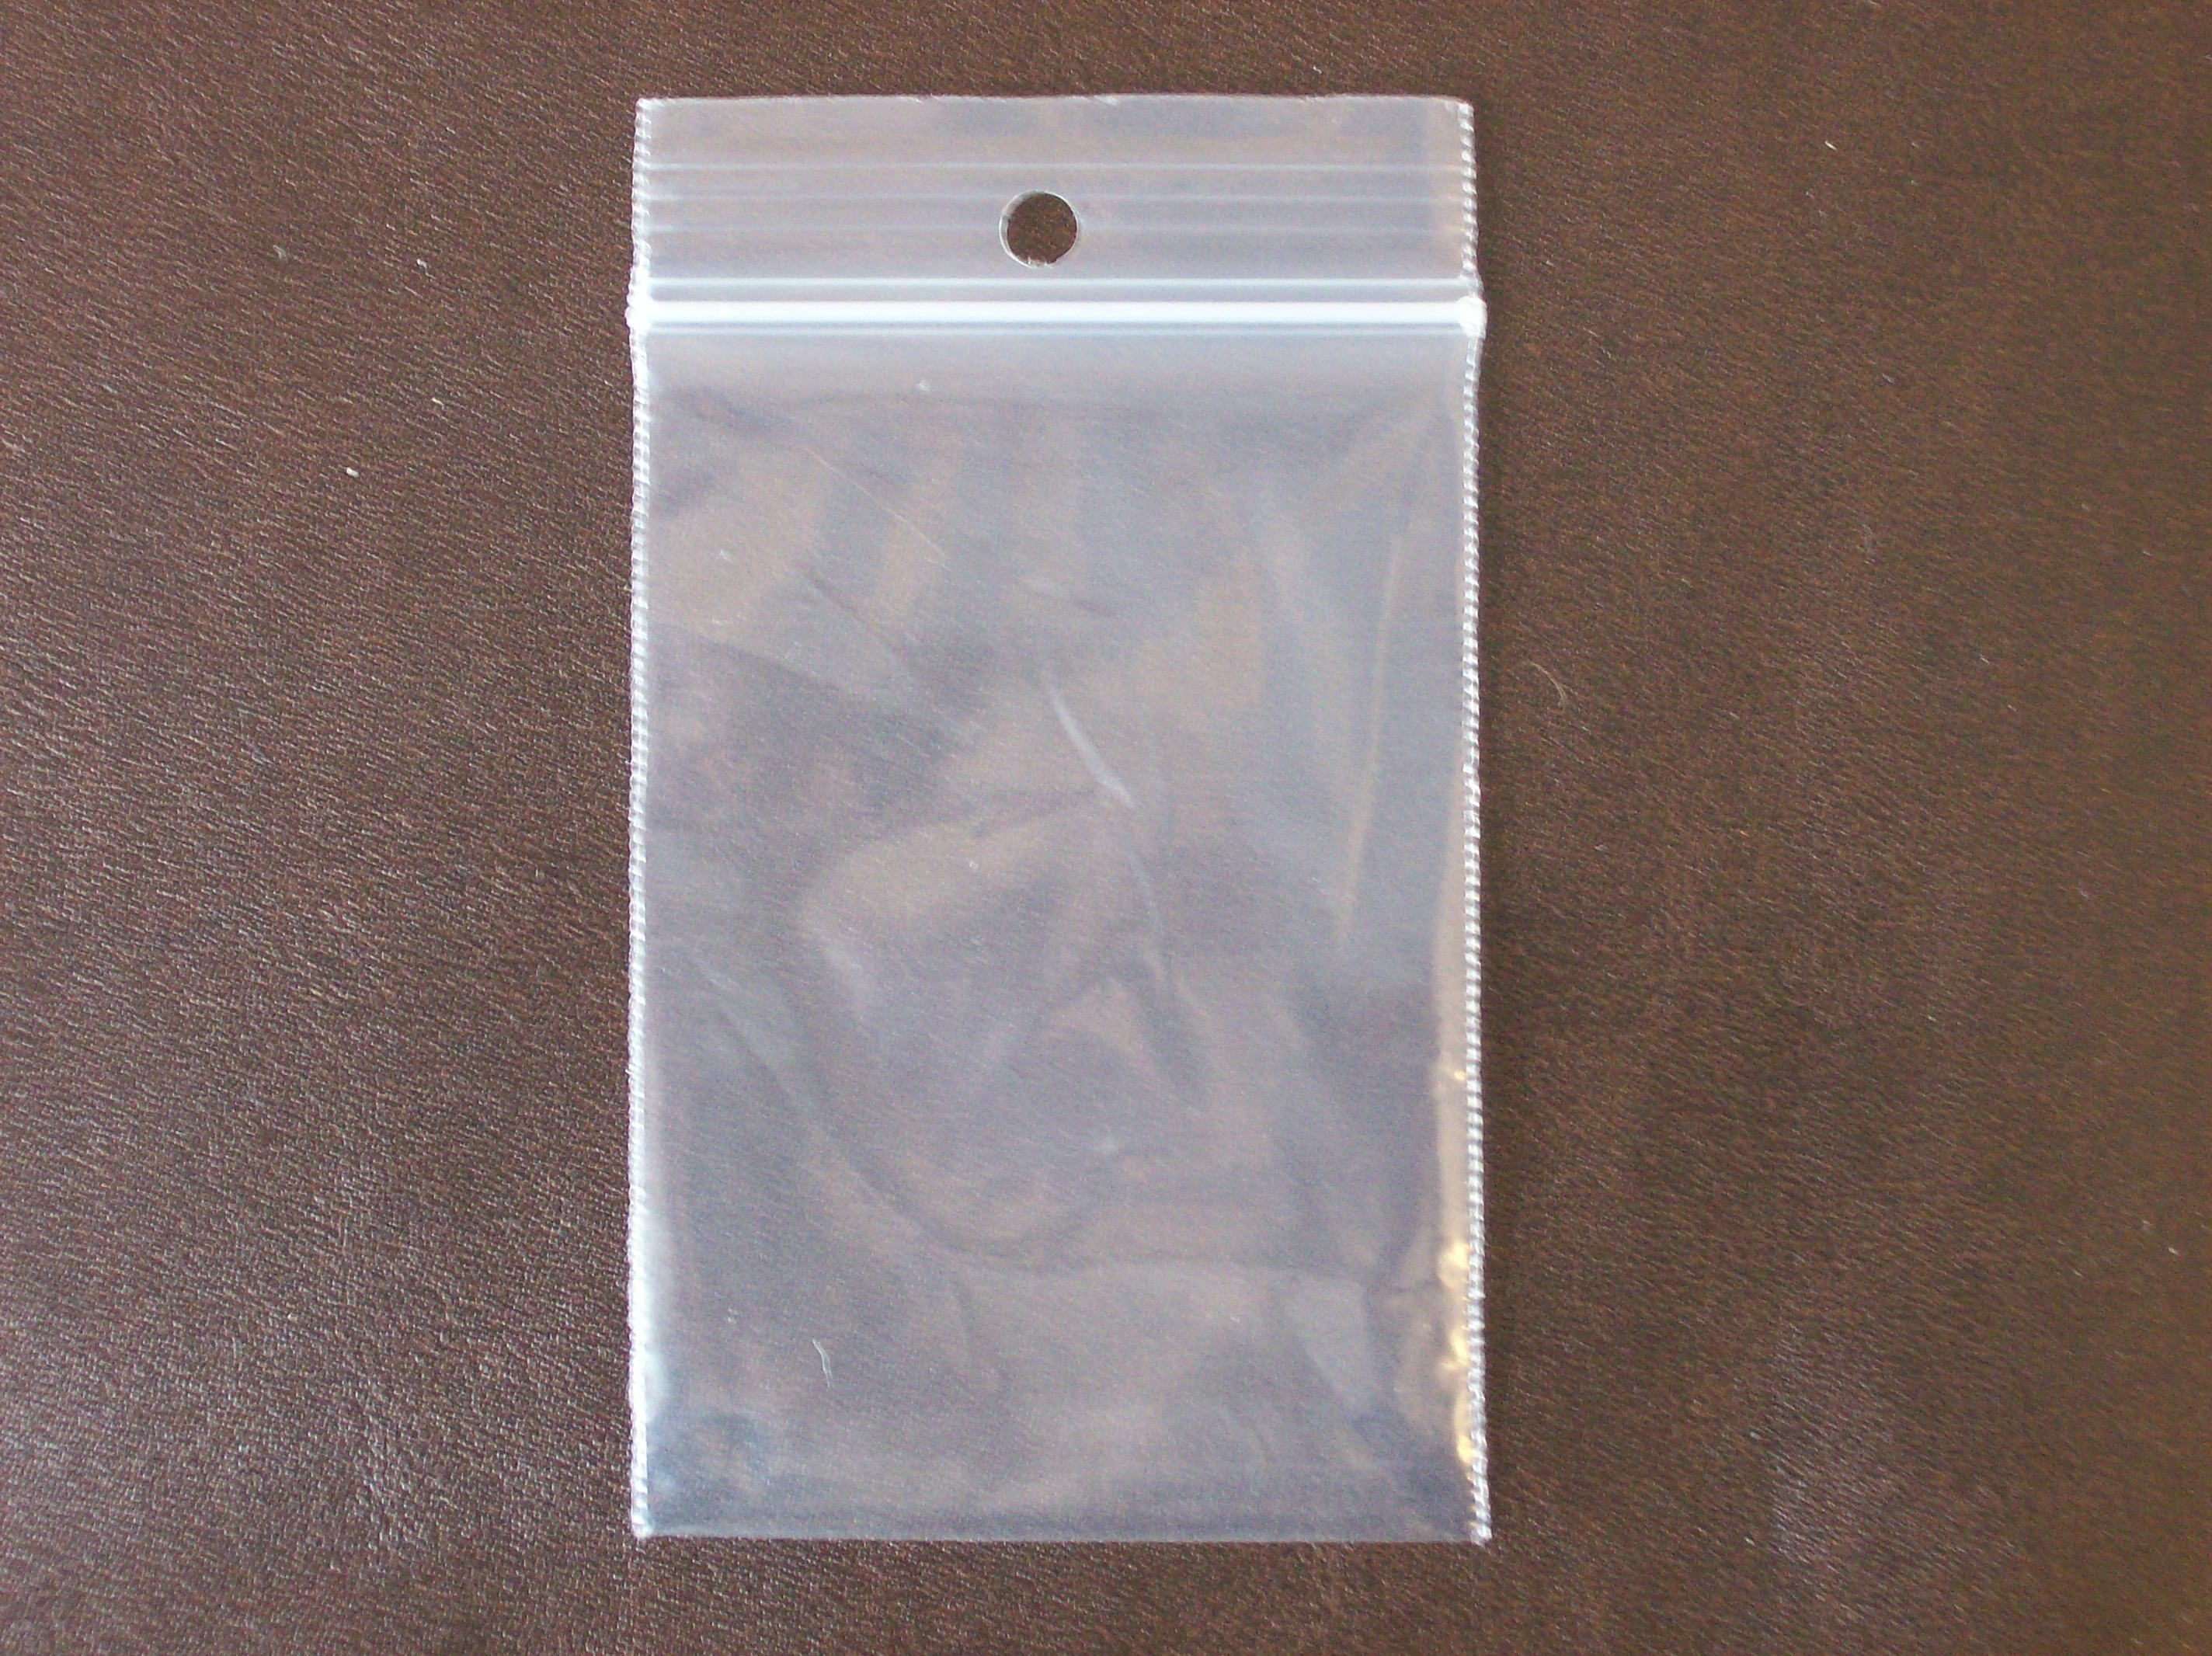 ziplock bags and plastic zip bags for packaging and